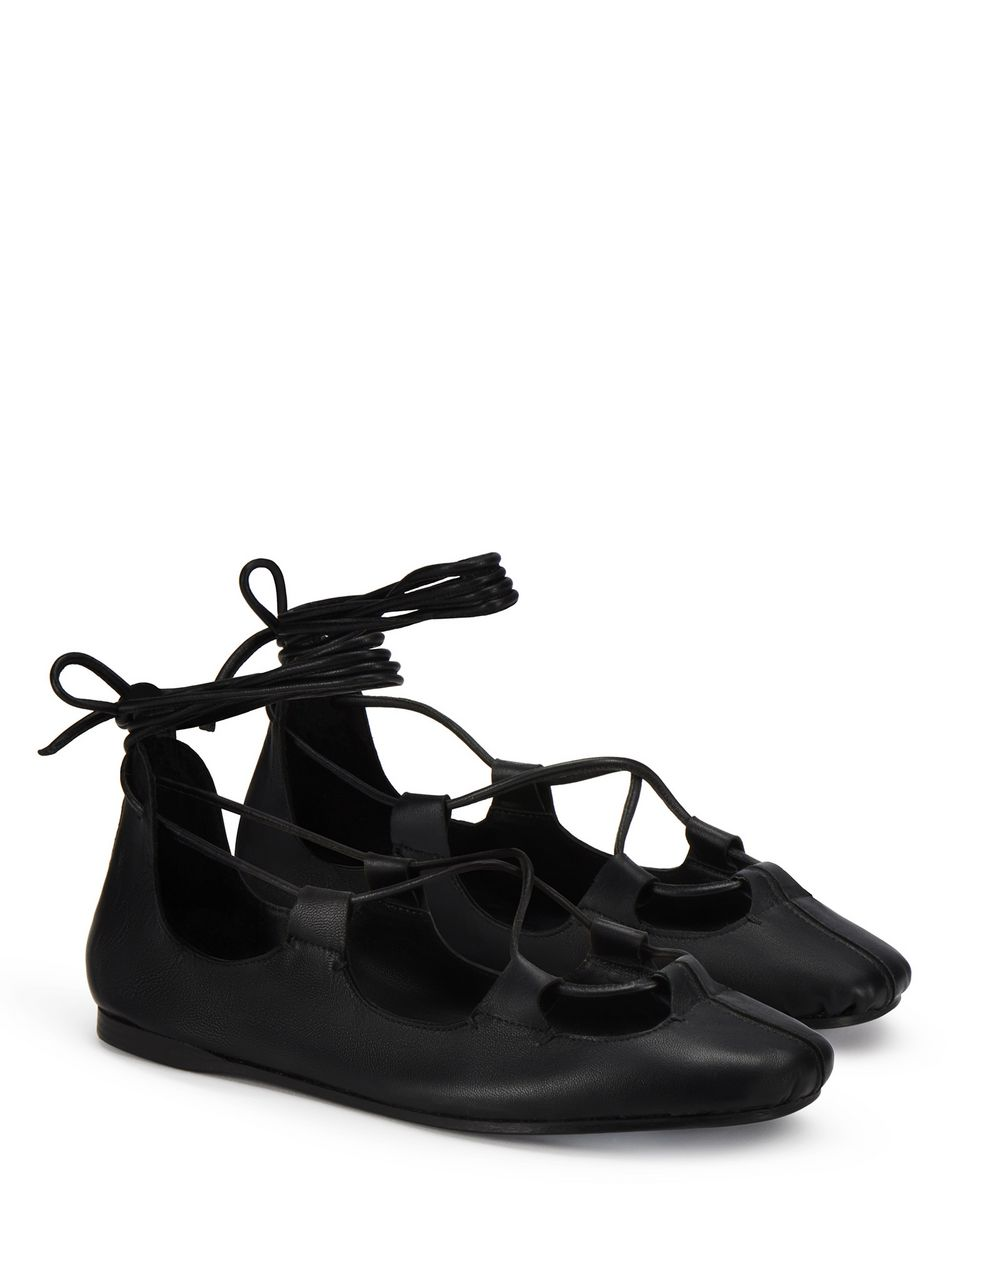 LEATHER GHILLIES  - Lanvin